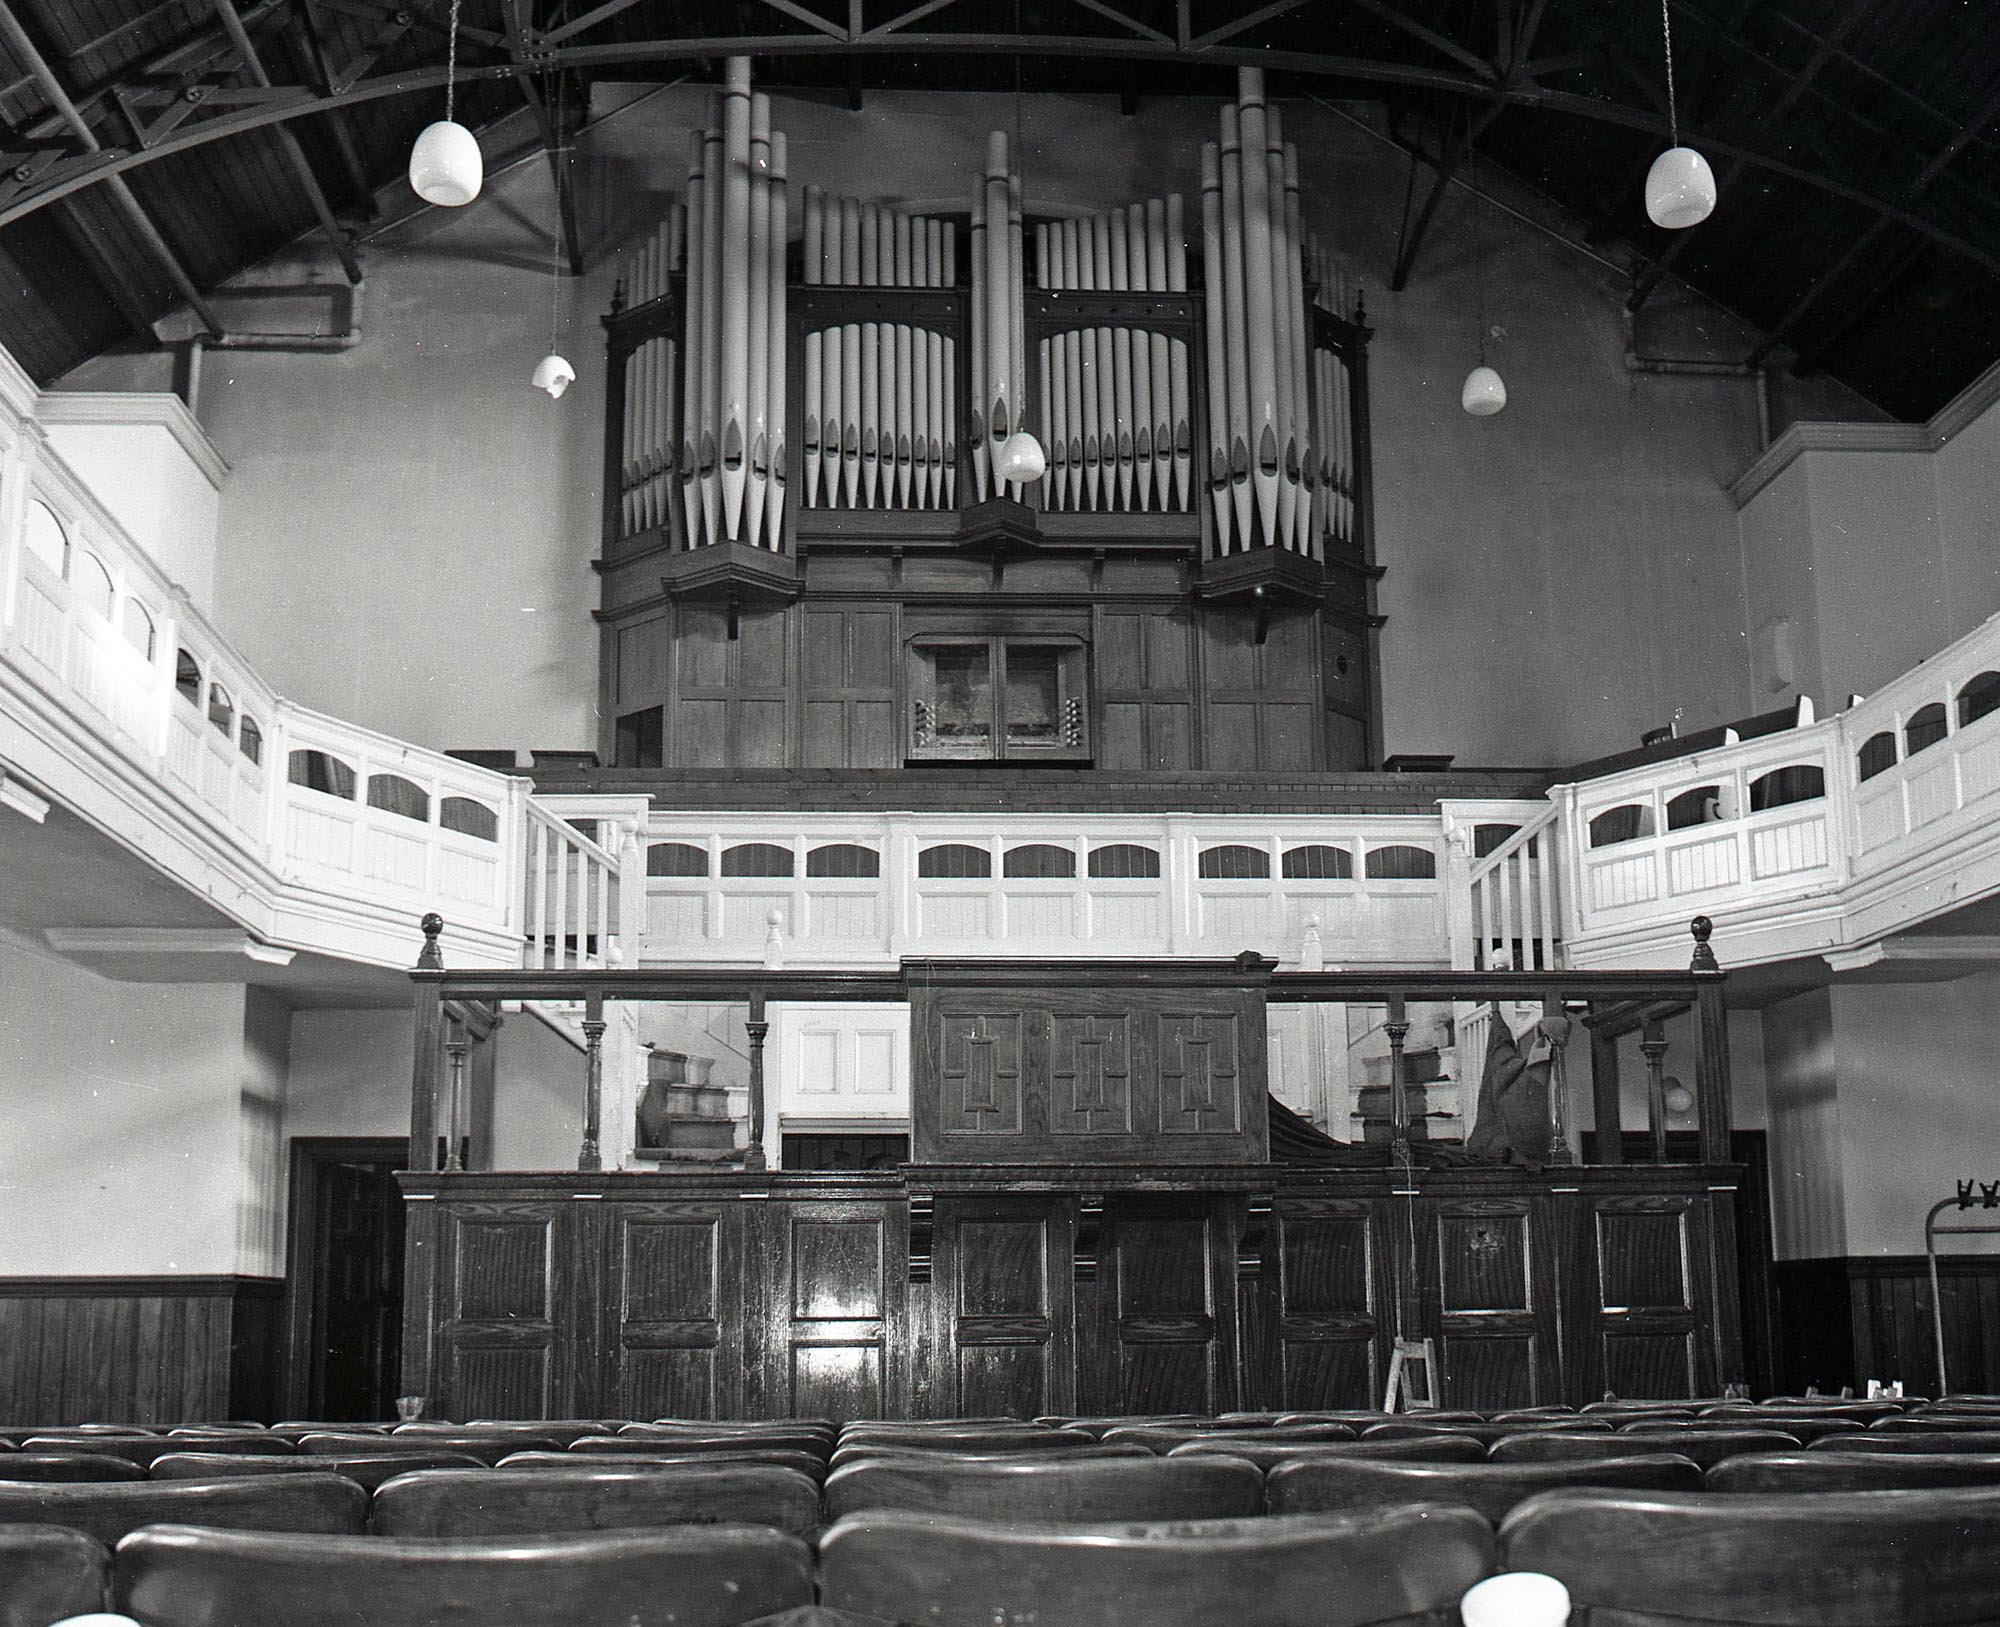 The church organ before it was decommissioned -